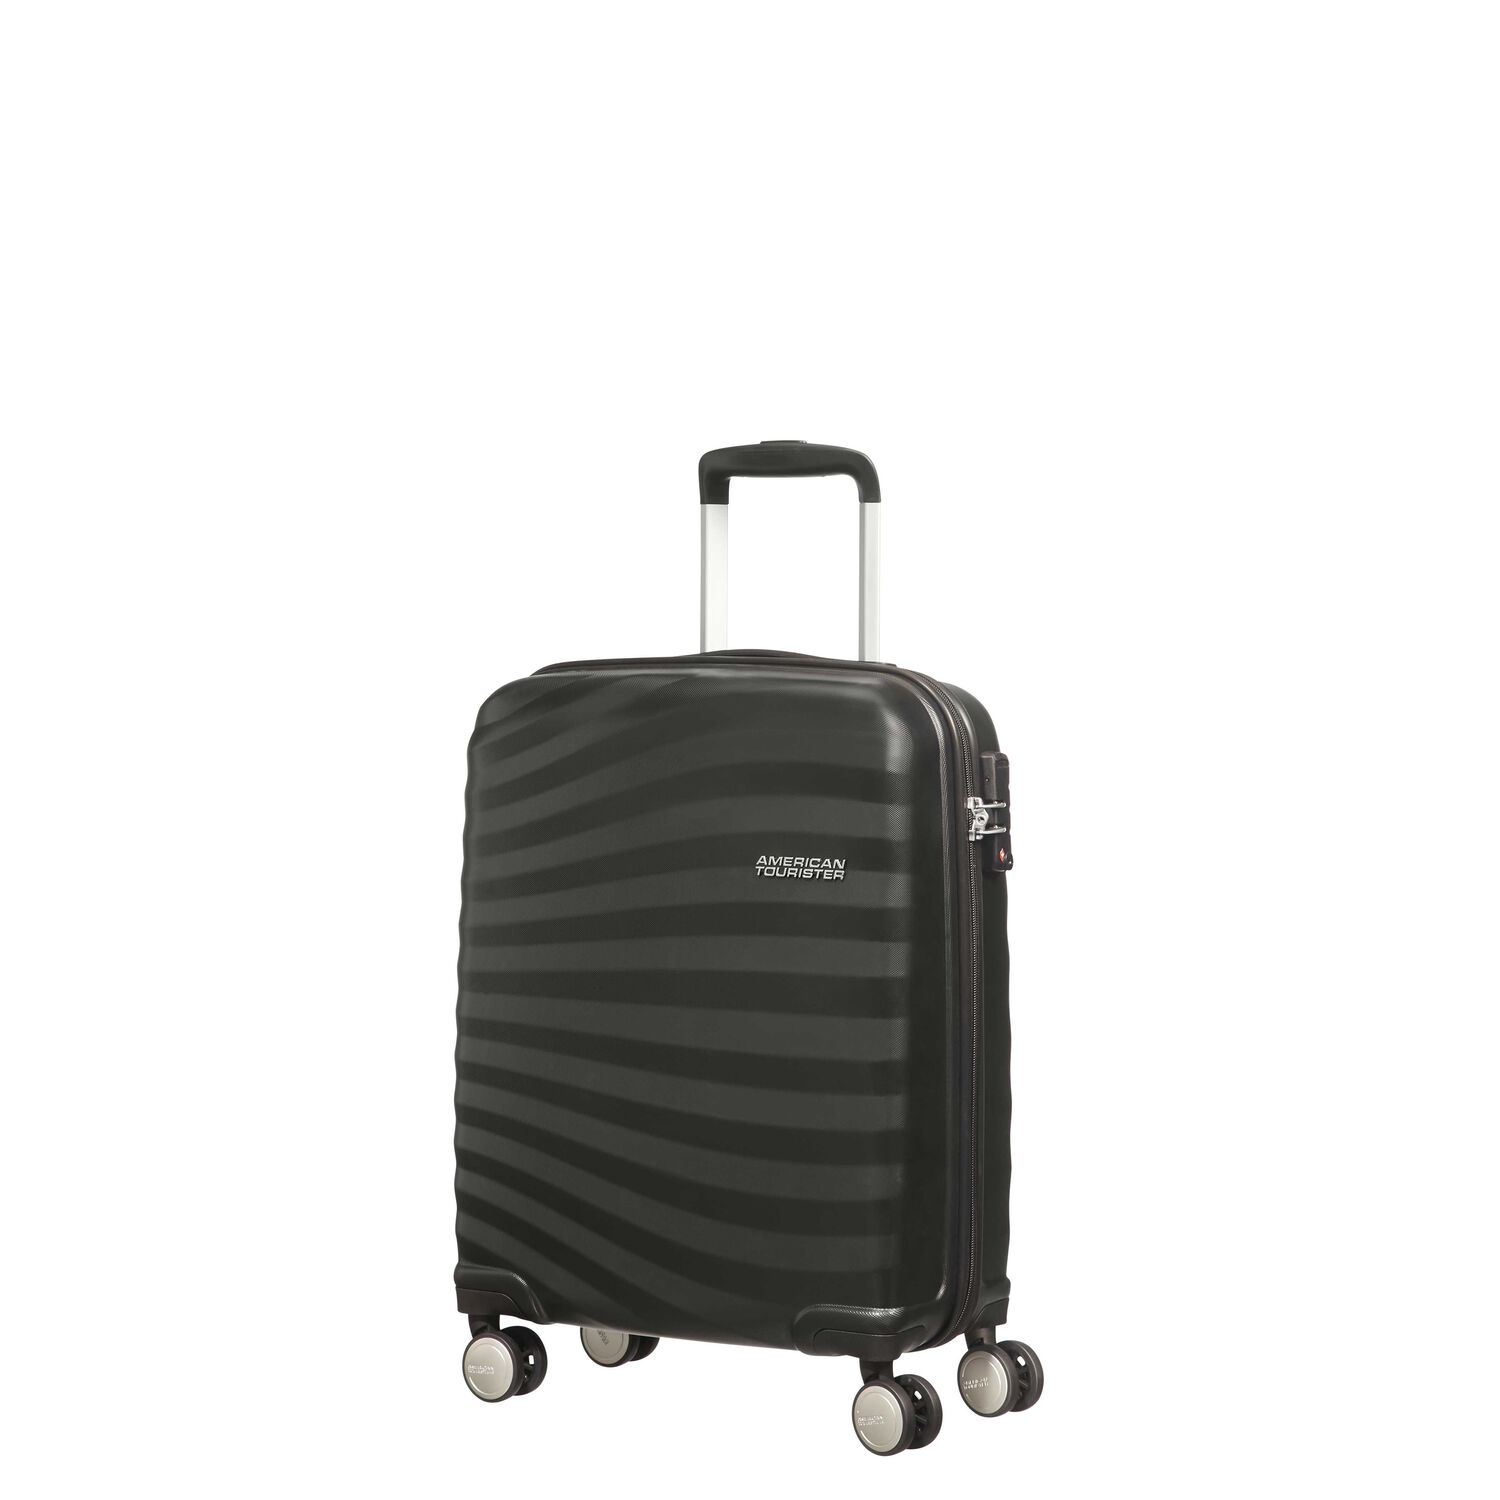 31e3f9a92 American Tourister Oceanfront Spinner Carry-On in the color Onyx Black.